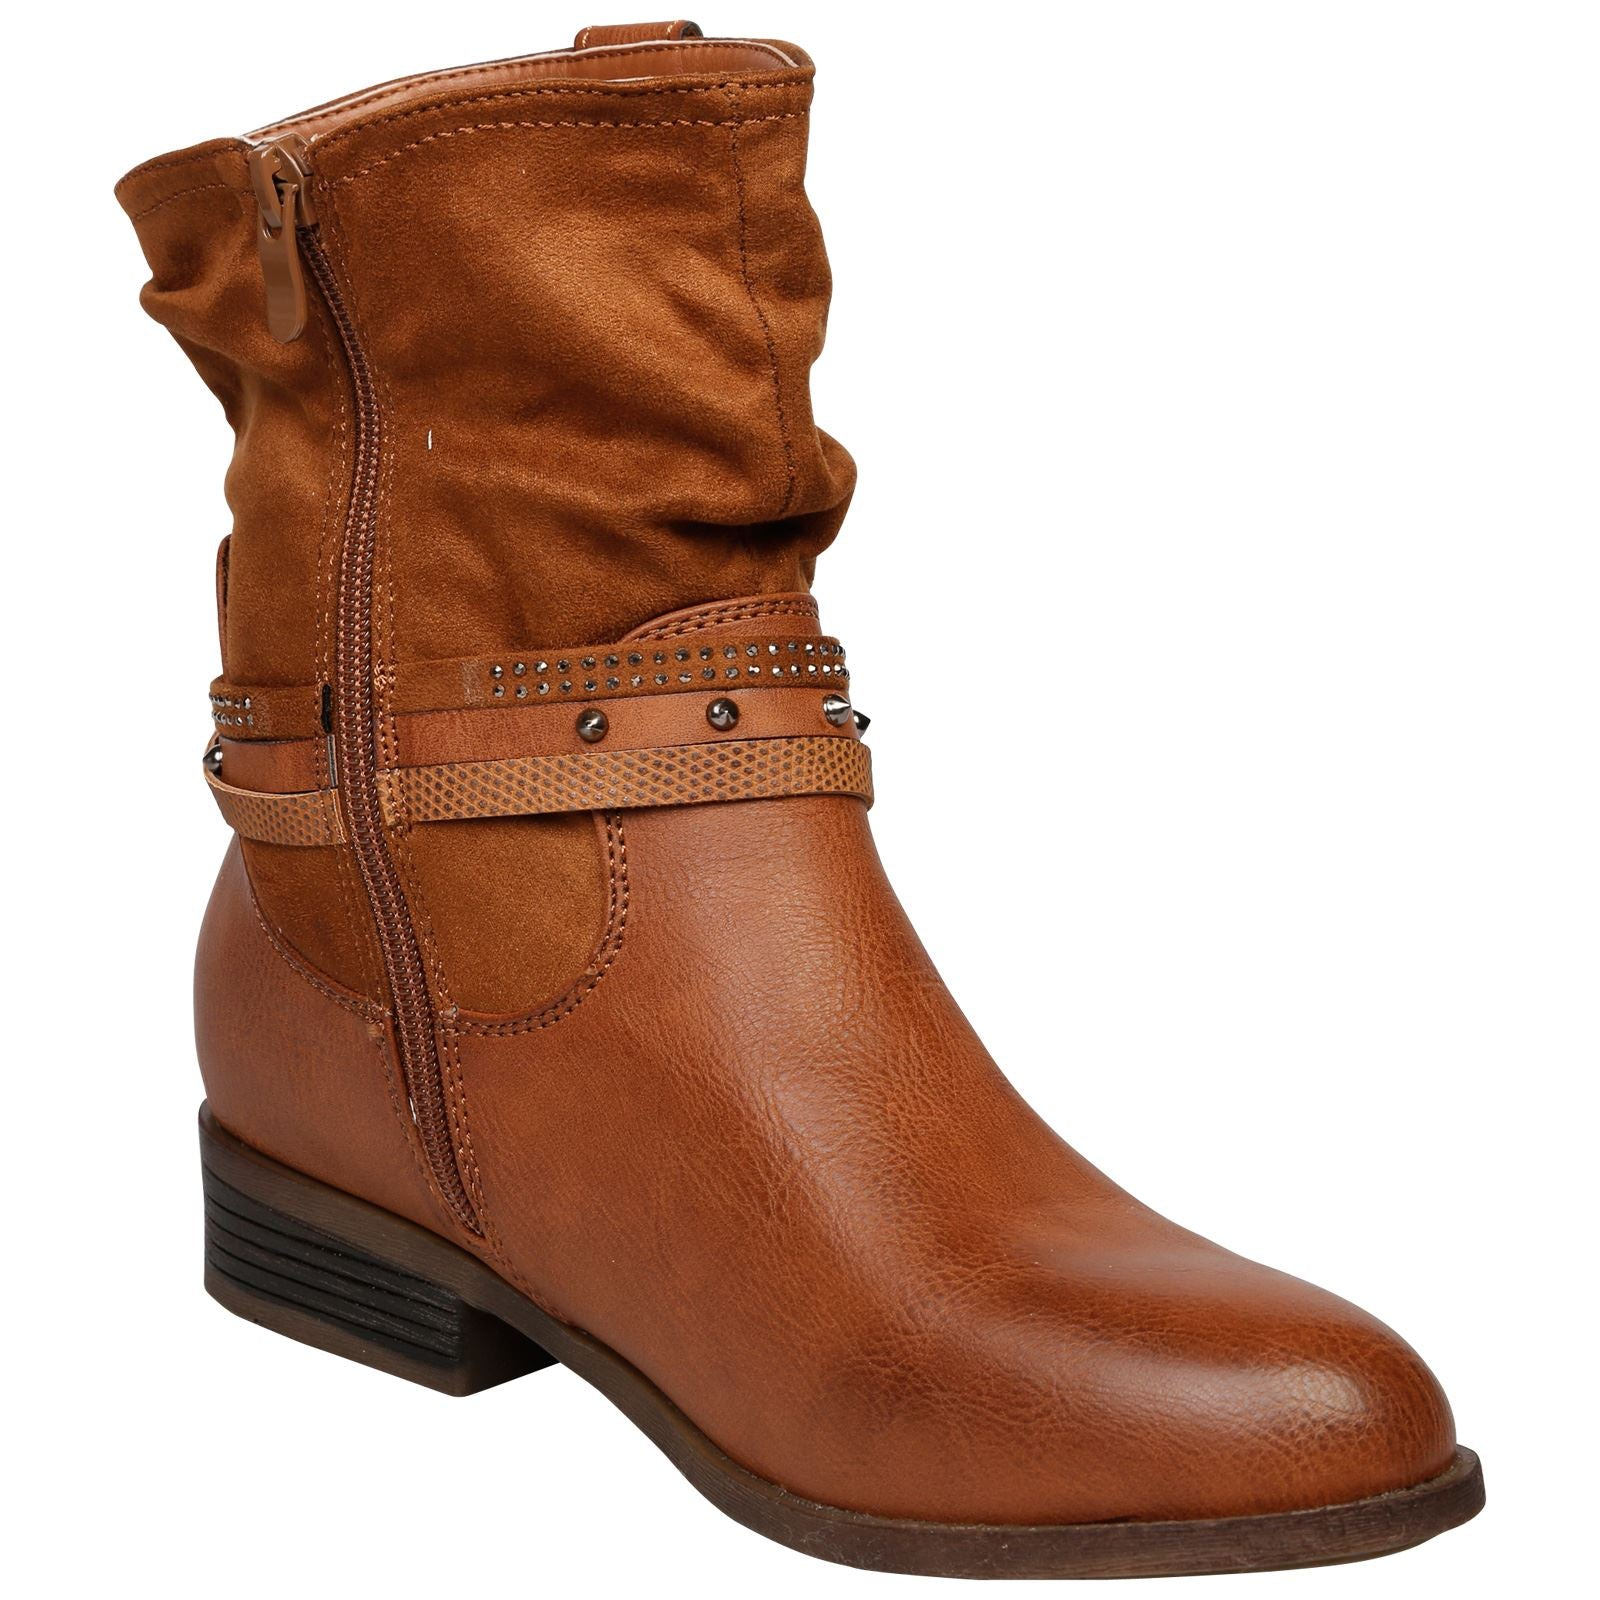 Dream Strappy Ankle Boots in Camel - Feet First Fashion